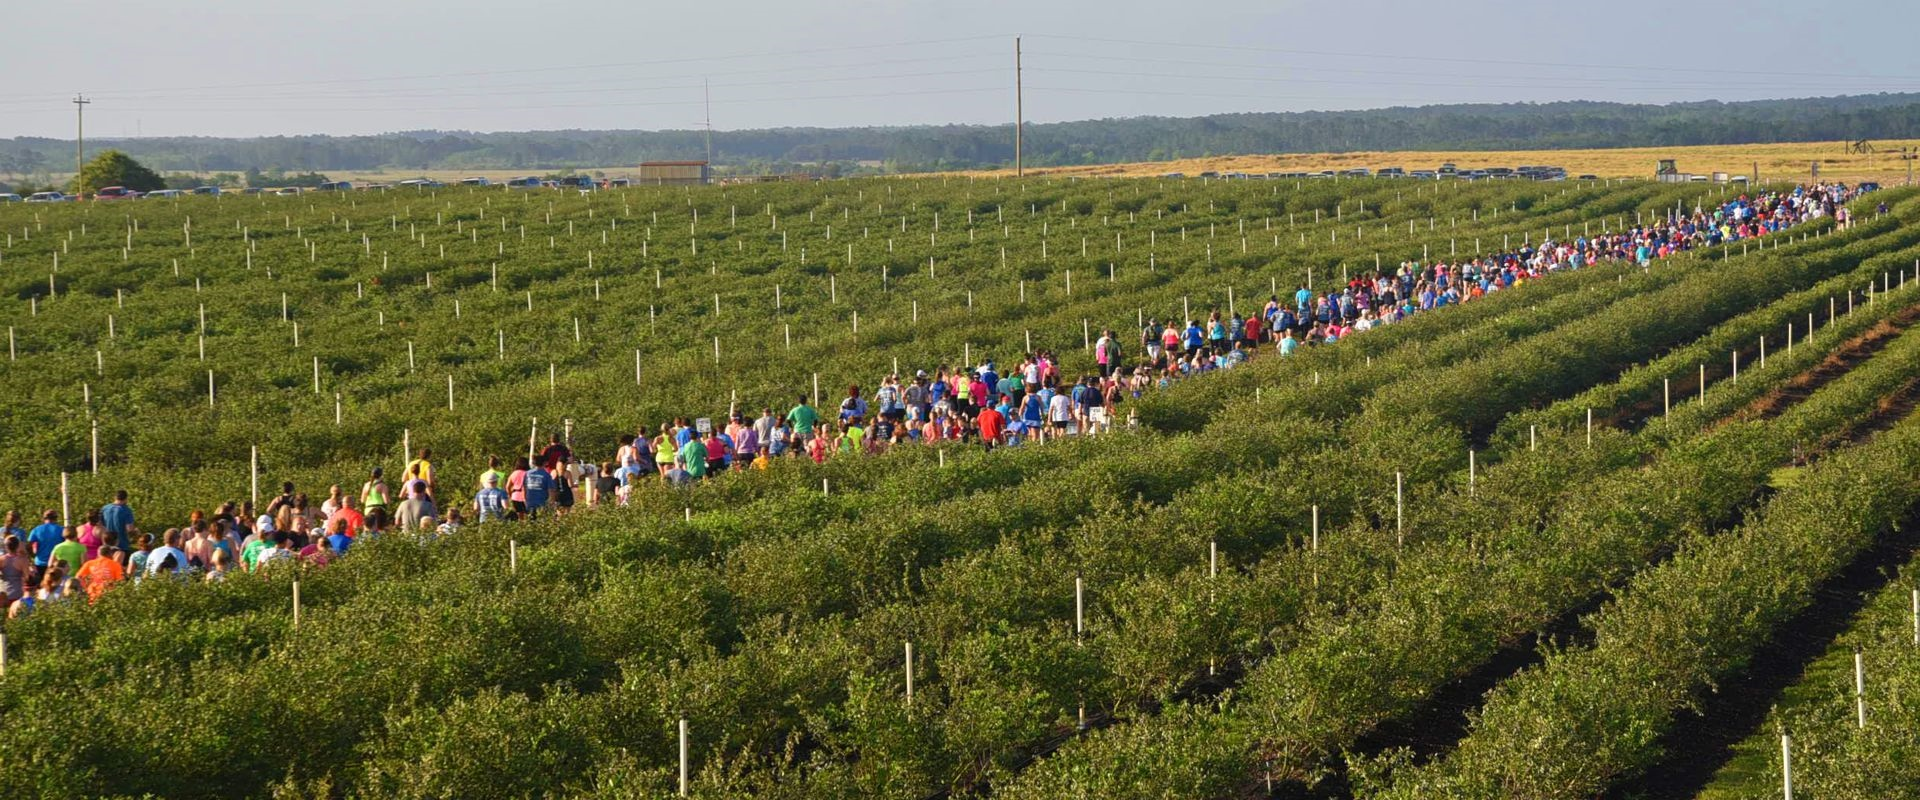 U-RUN, U-PICK, BLUEBERRY 5K - April 25